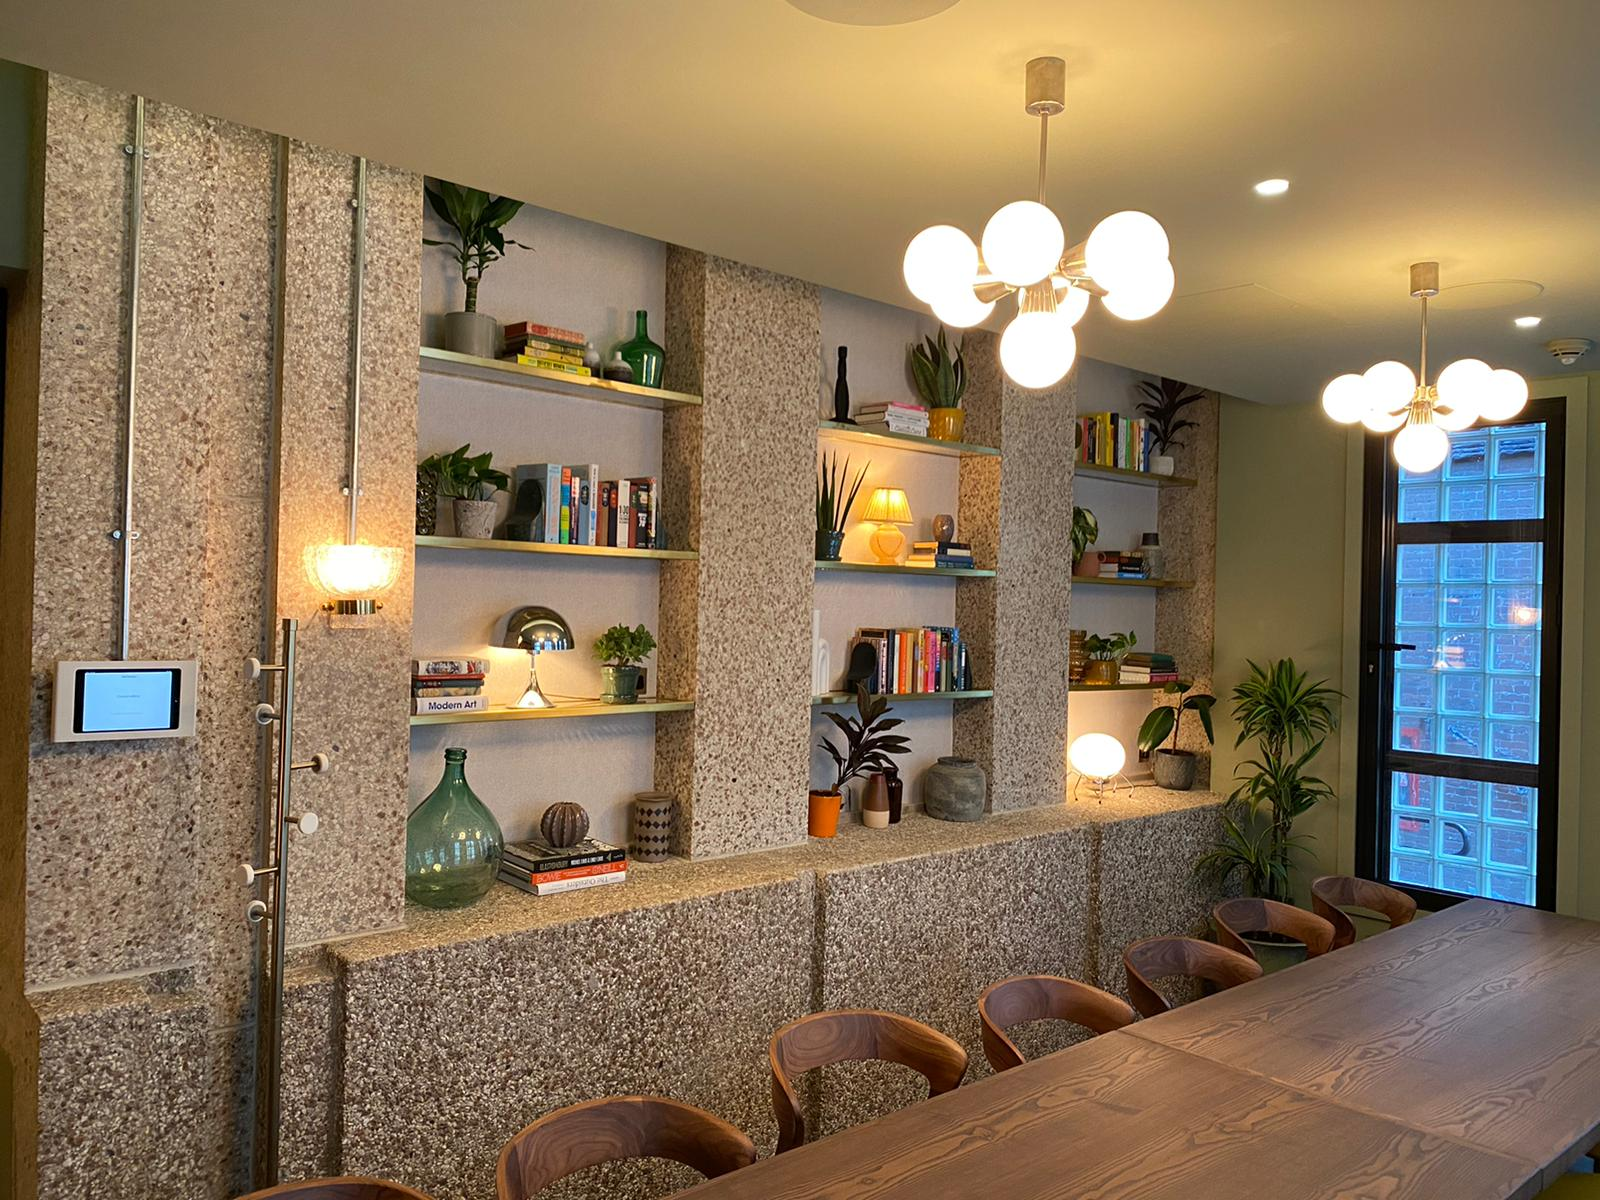 Smart lighting, heating and audio visual control in the Hoxton Hotel